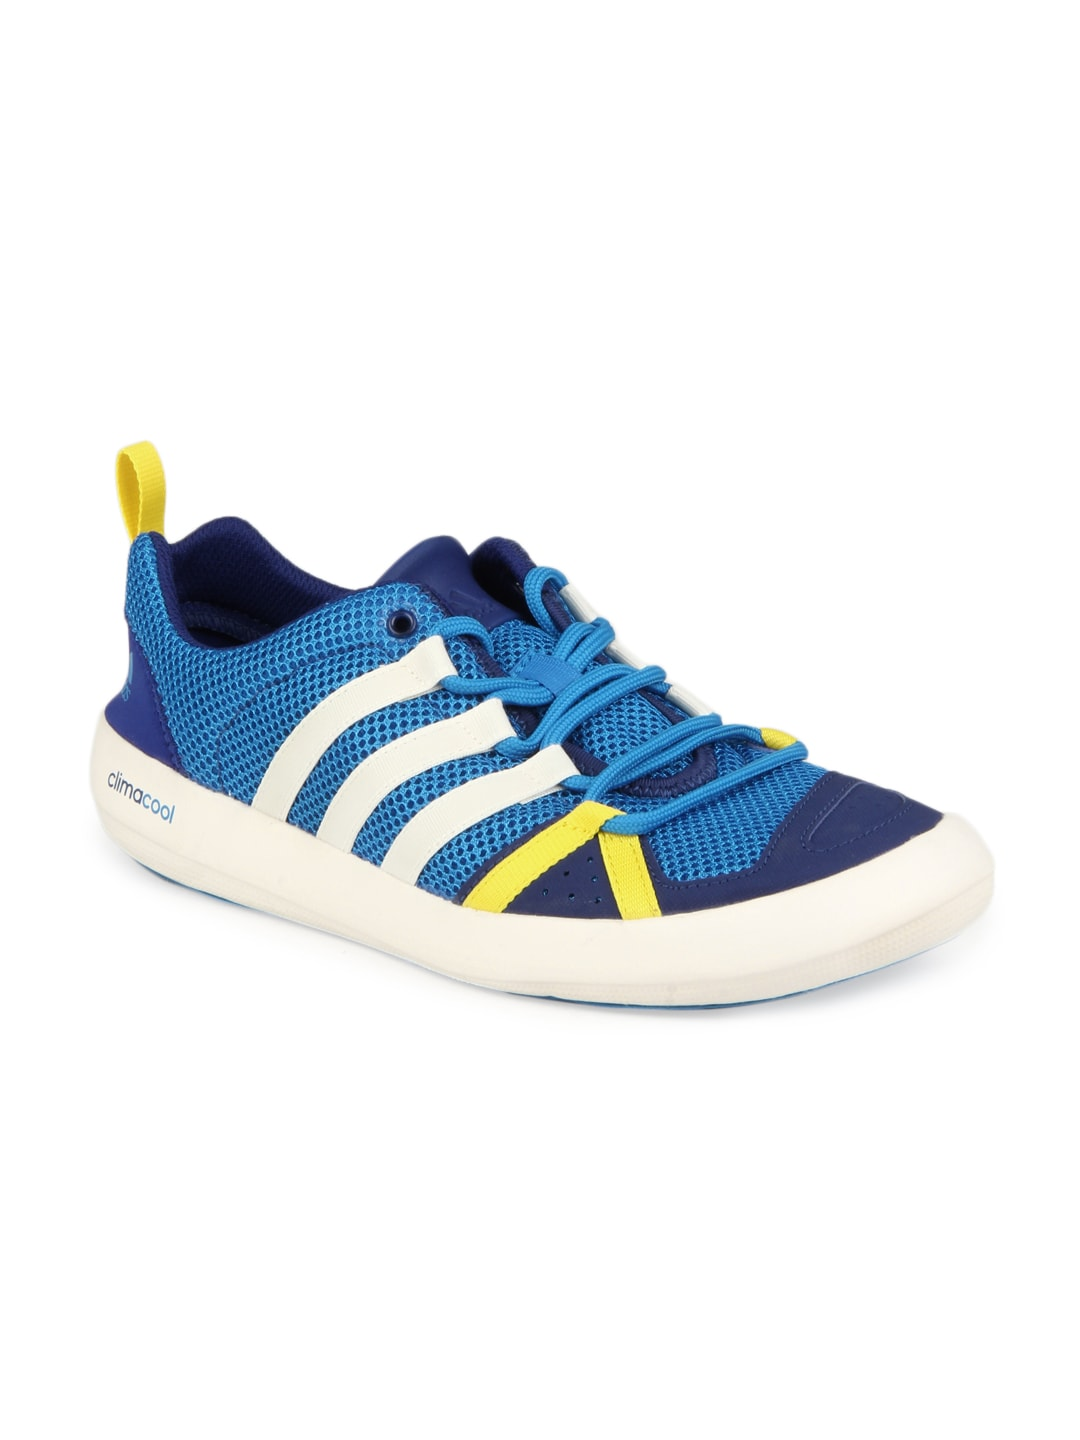 buy adidas unisex blue climacool boat lace casual shoes. Black Bedroom Furniture Sets. Home Design Ideas